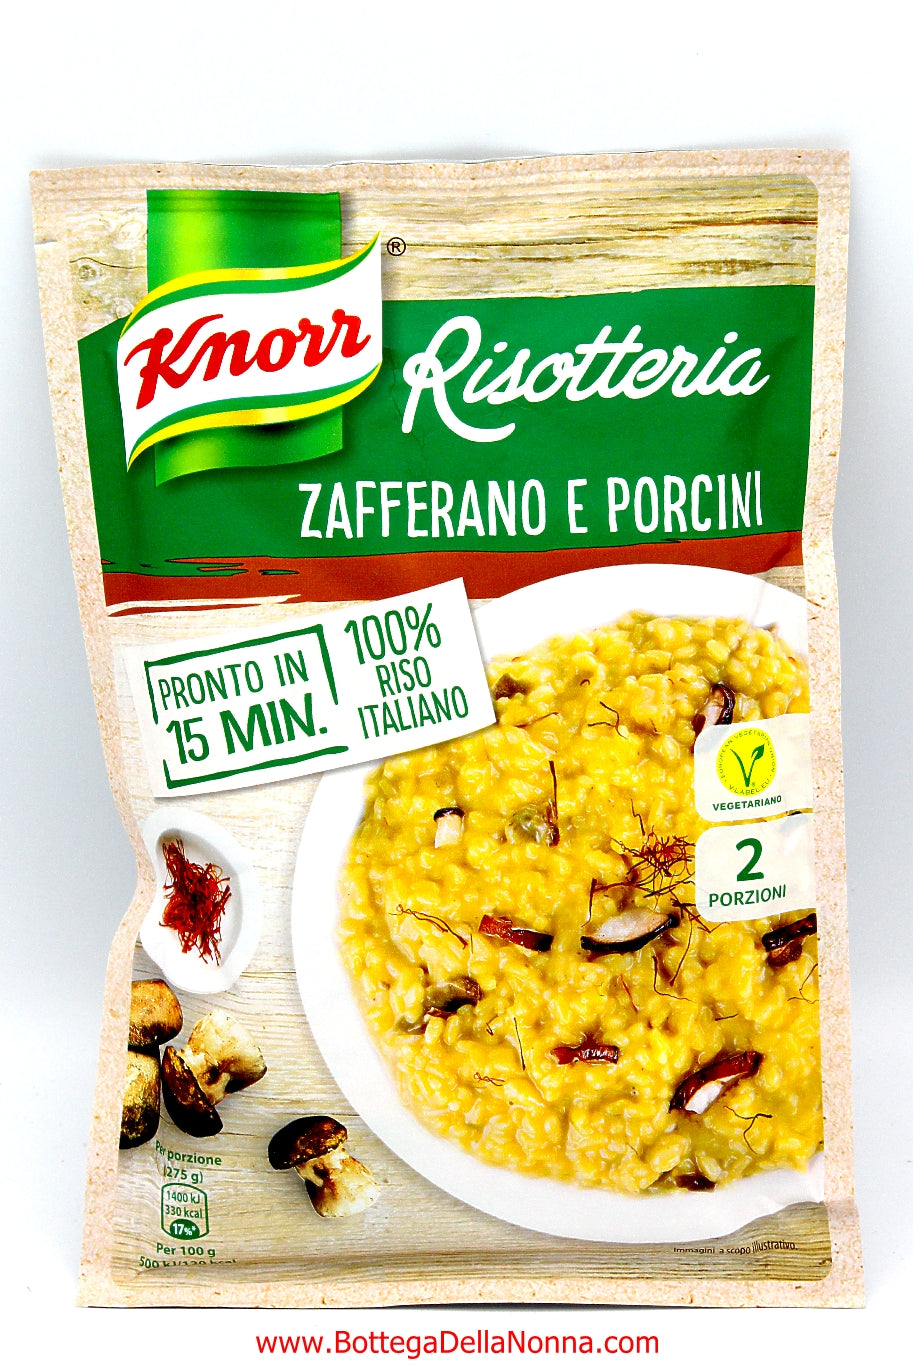 Knorr Risotto with Zafferano and Porcini Mushrooms